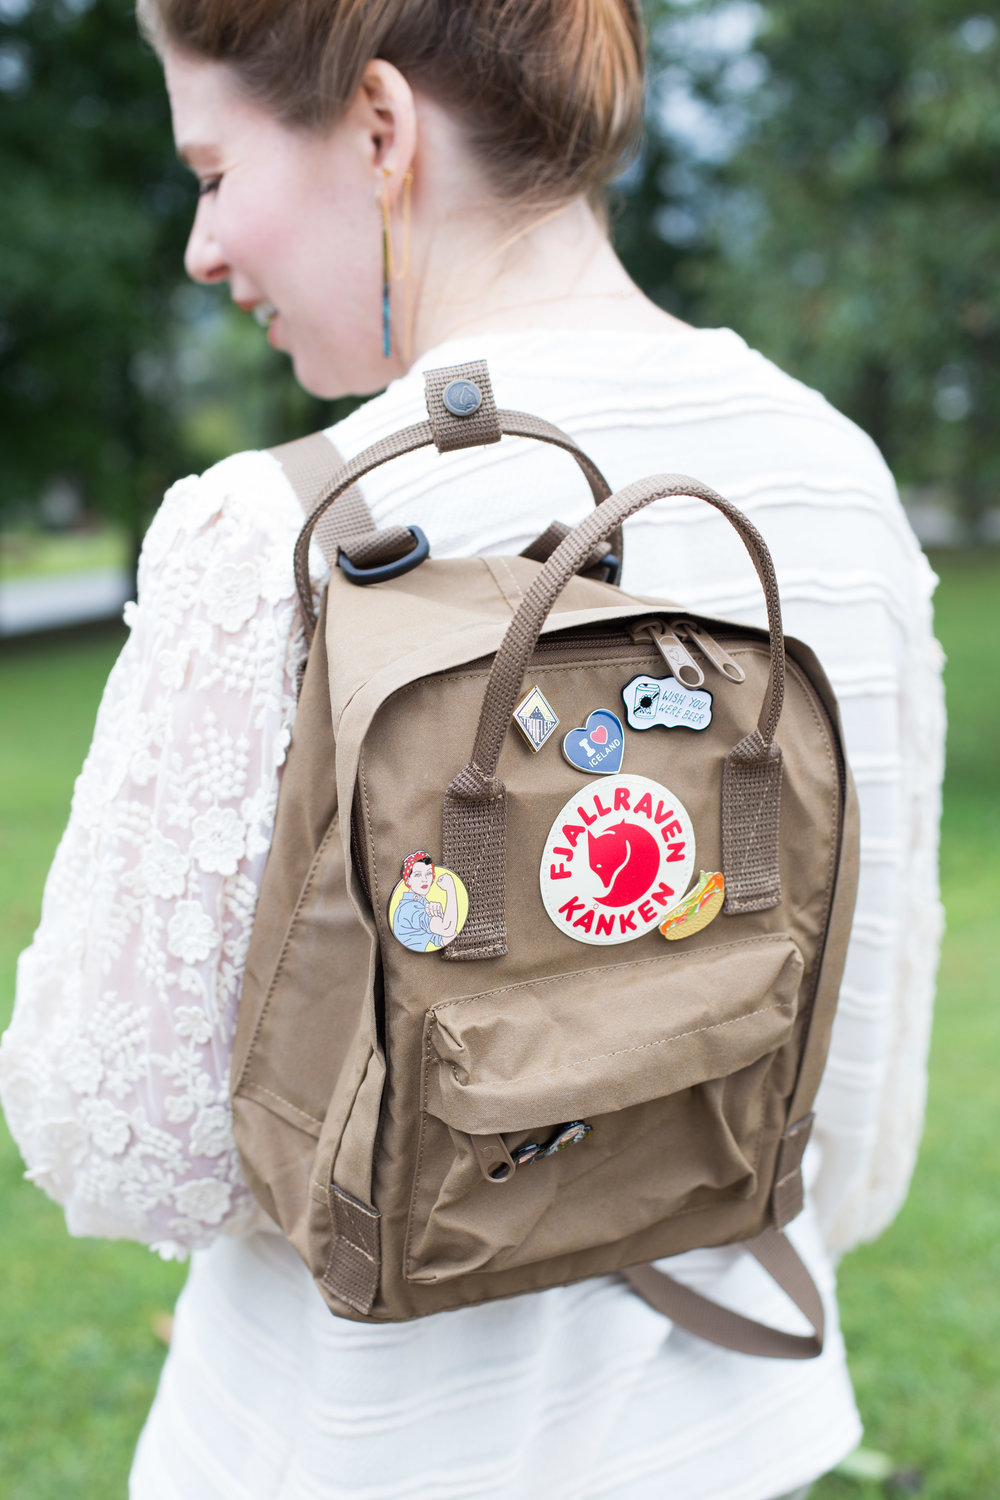 Fjallraven Kanken mini backpack covered in enamel pins.